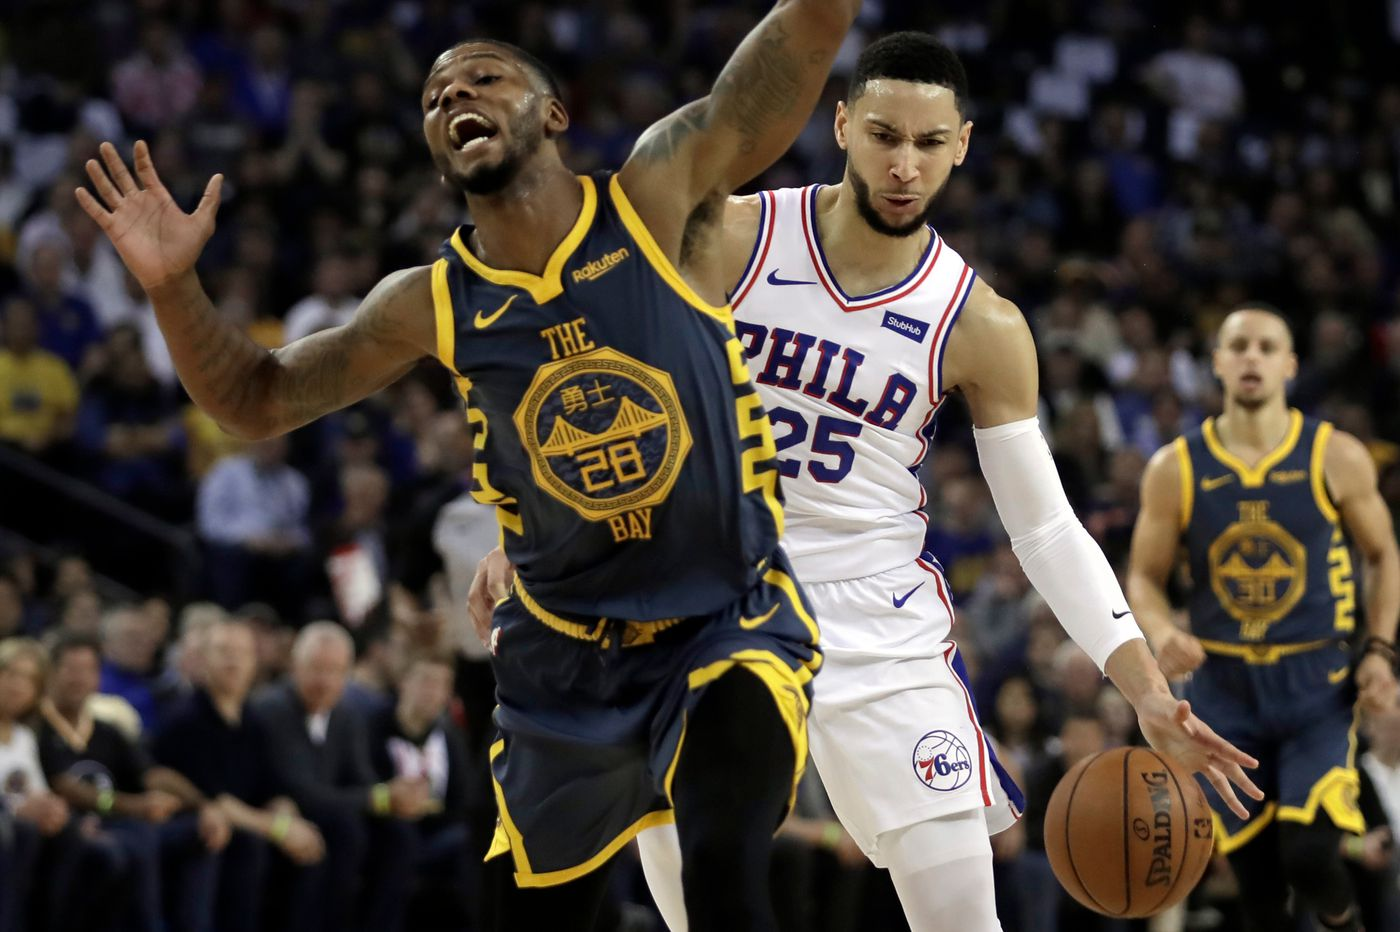 Sixers-Warriors observations: Ben Simmons' swagger, bench players